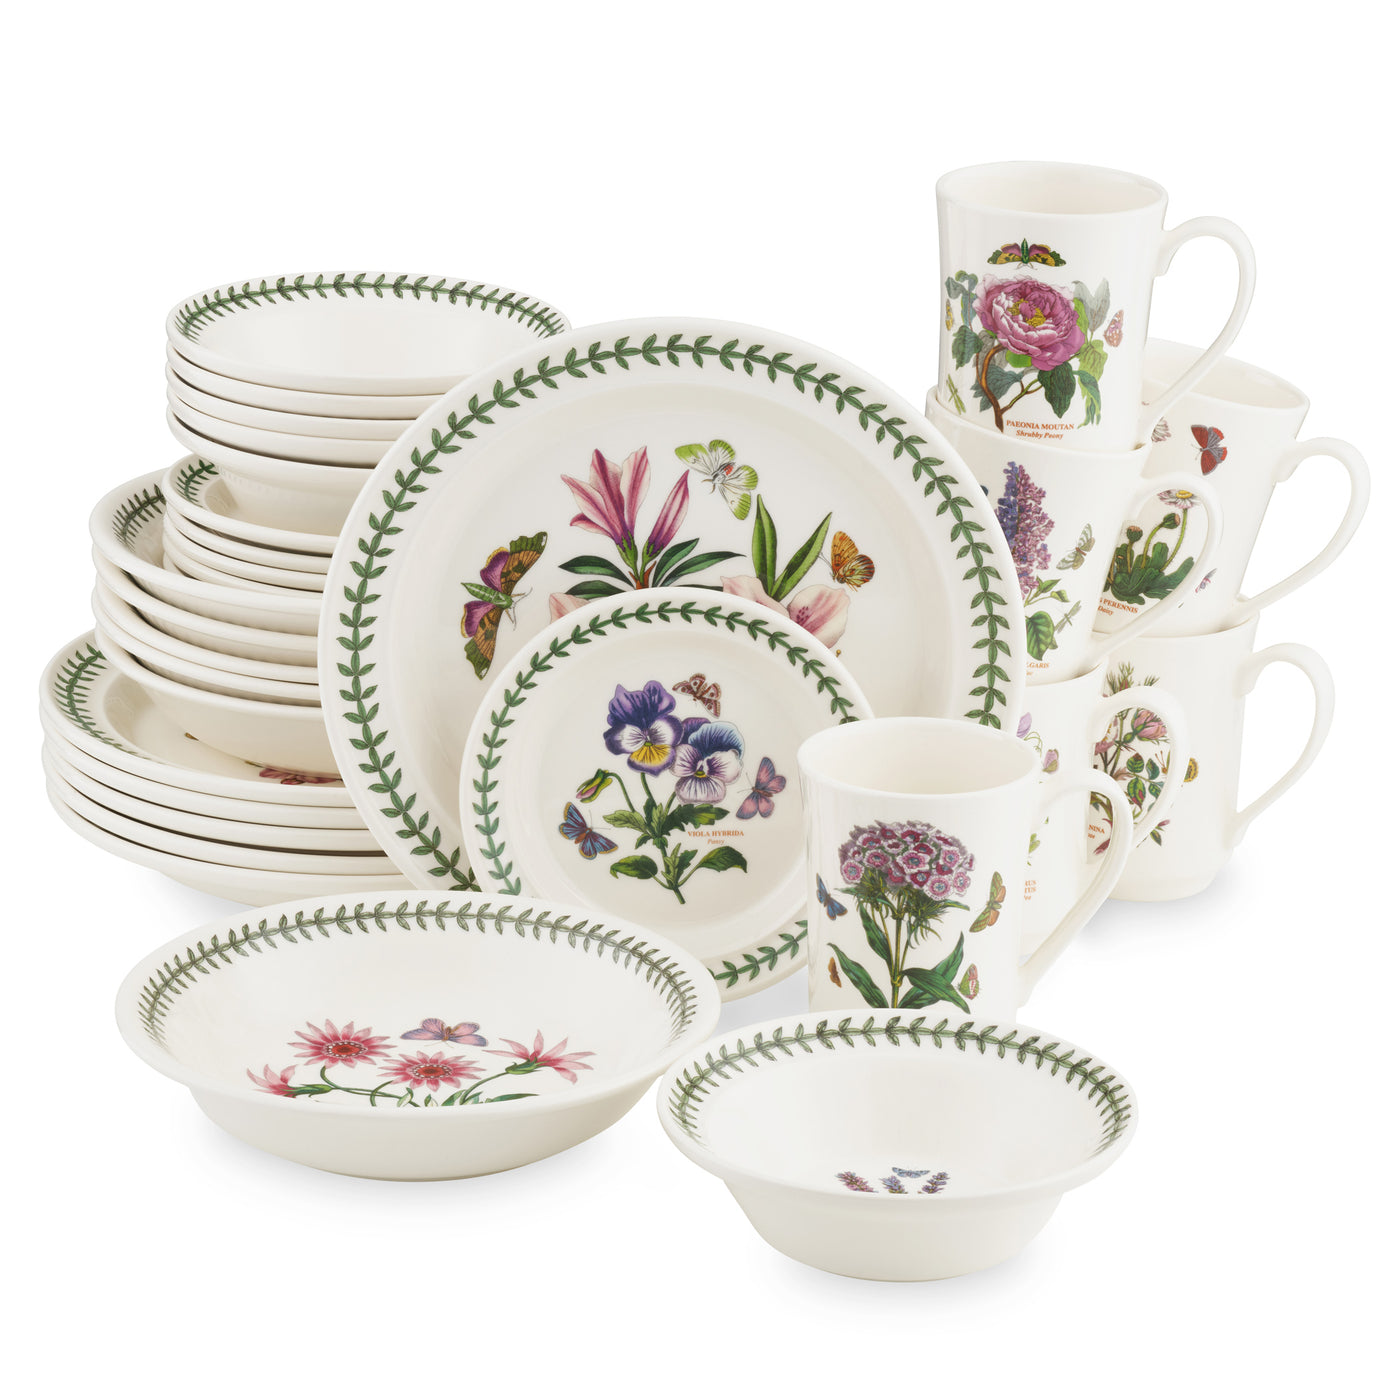 Botanic Garden 30pc Set (Dinner, B&B, Cereal, Mug, Pasta)